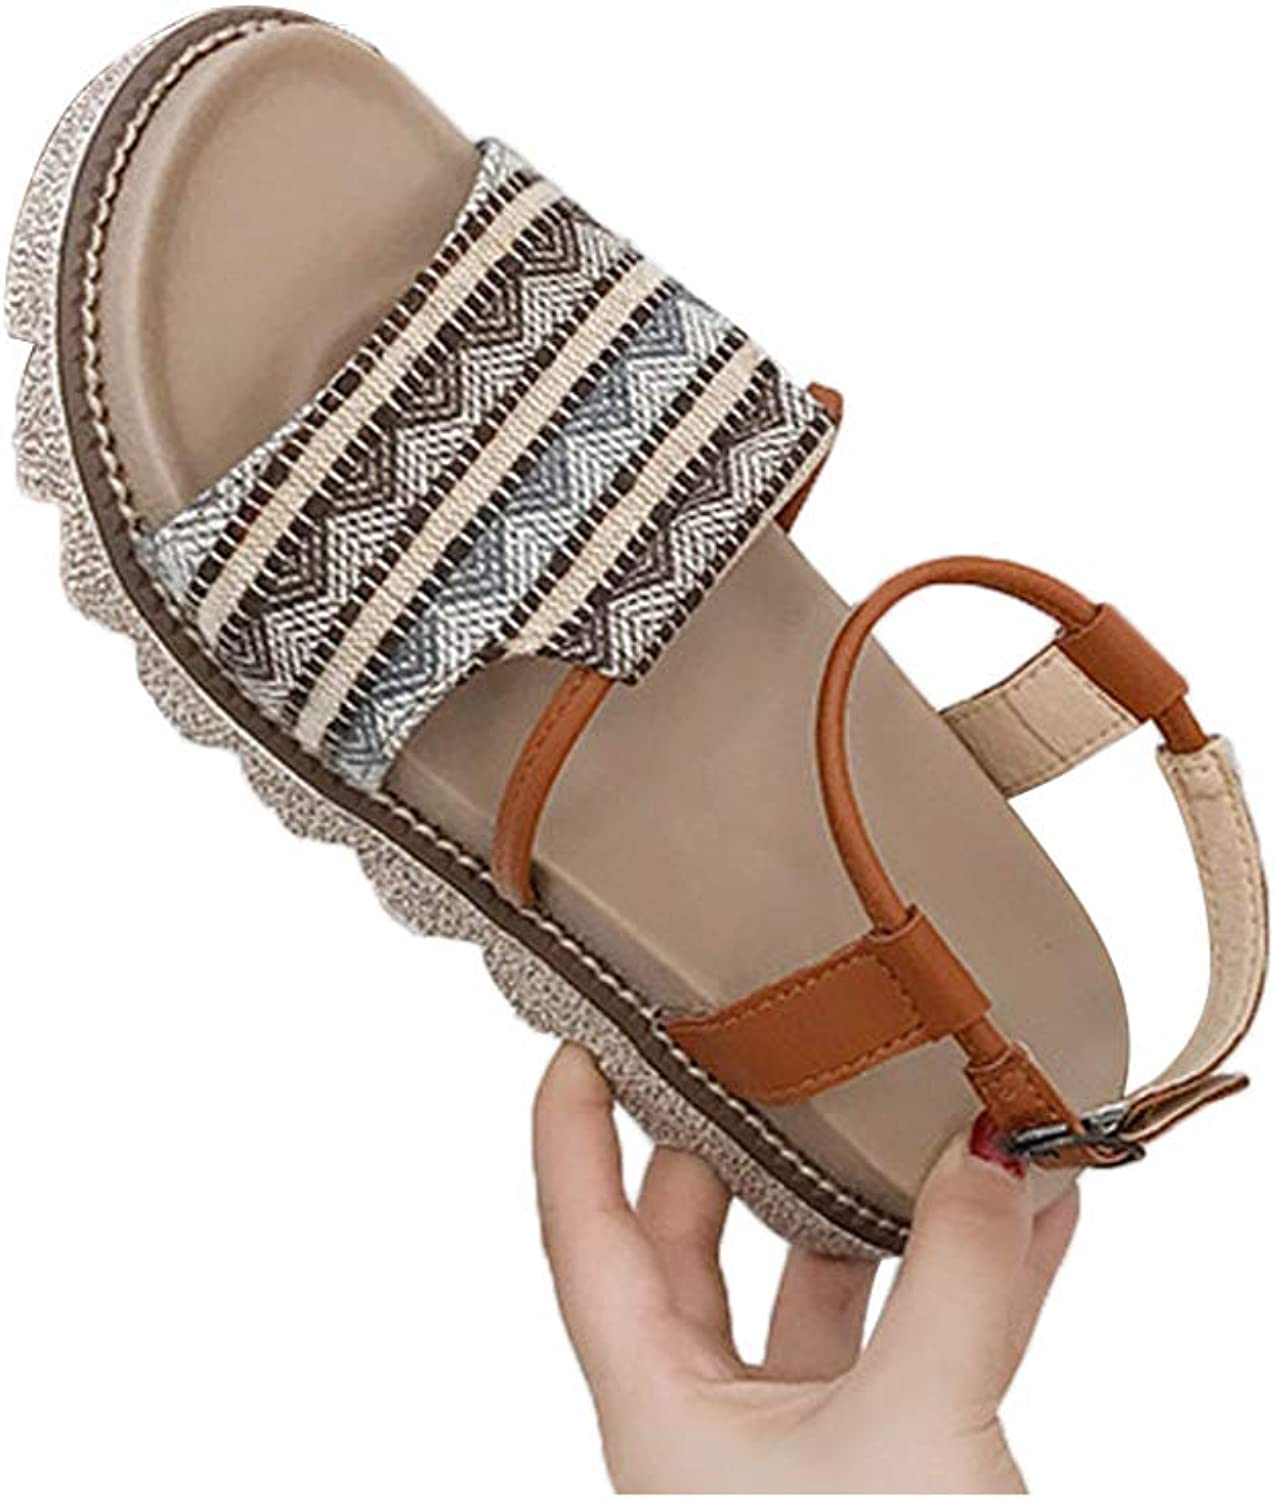 DBQWTY Ladies'Fashion Classic Workplace Leisure Sandals Fashion Open-Toed Sandals Flat-Soled Anti-Skid Sandals